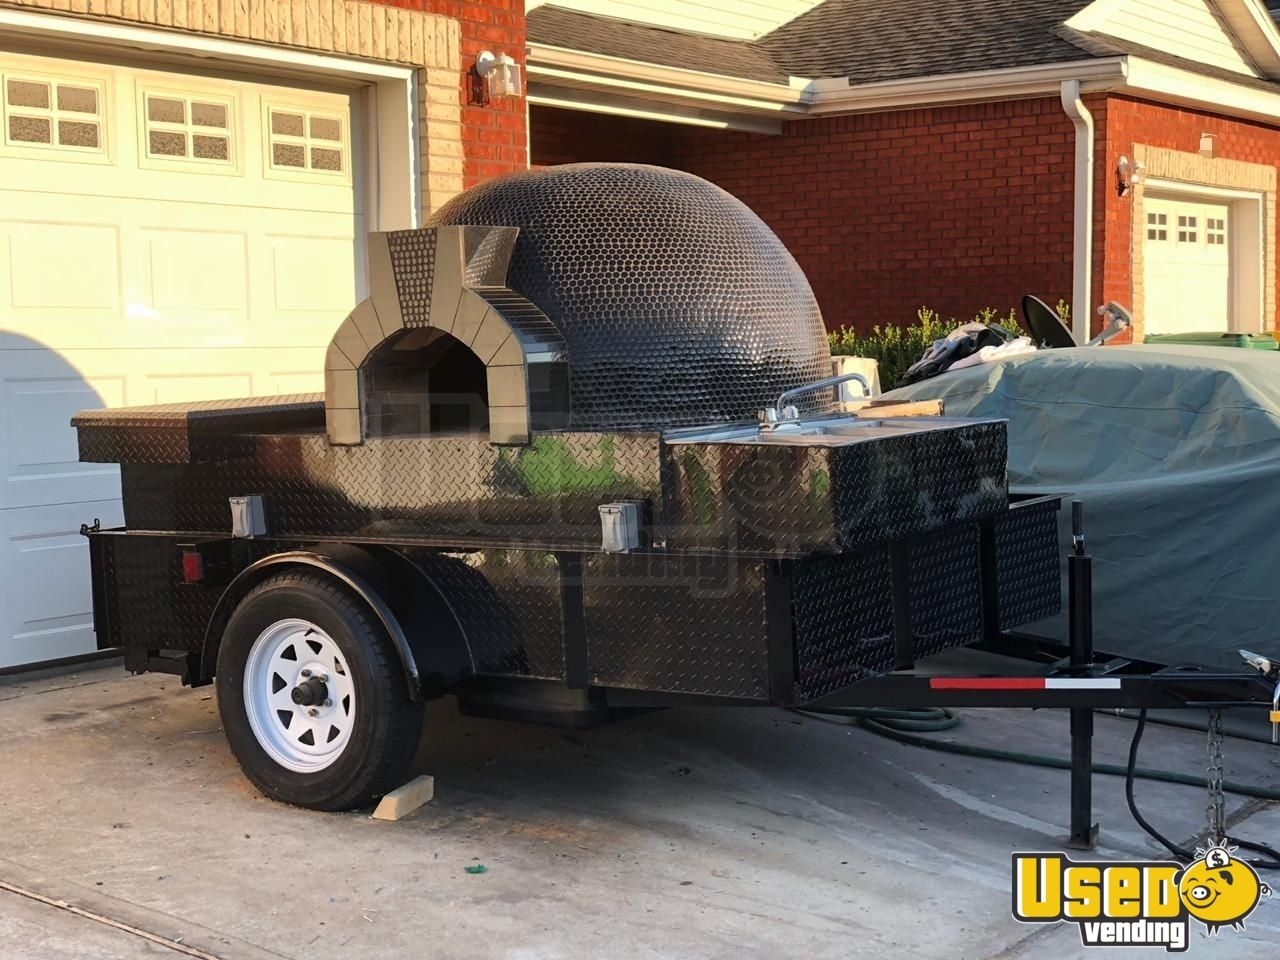 2018 - 5' x 8.5' Wood Fire Pizza Oven Trailer for Sale in Florida!!!